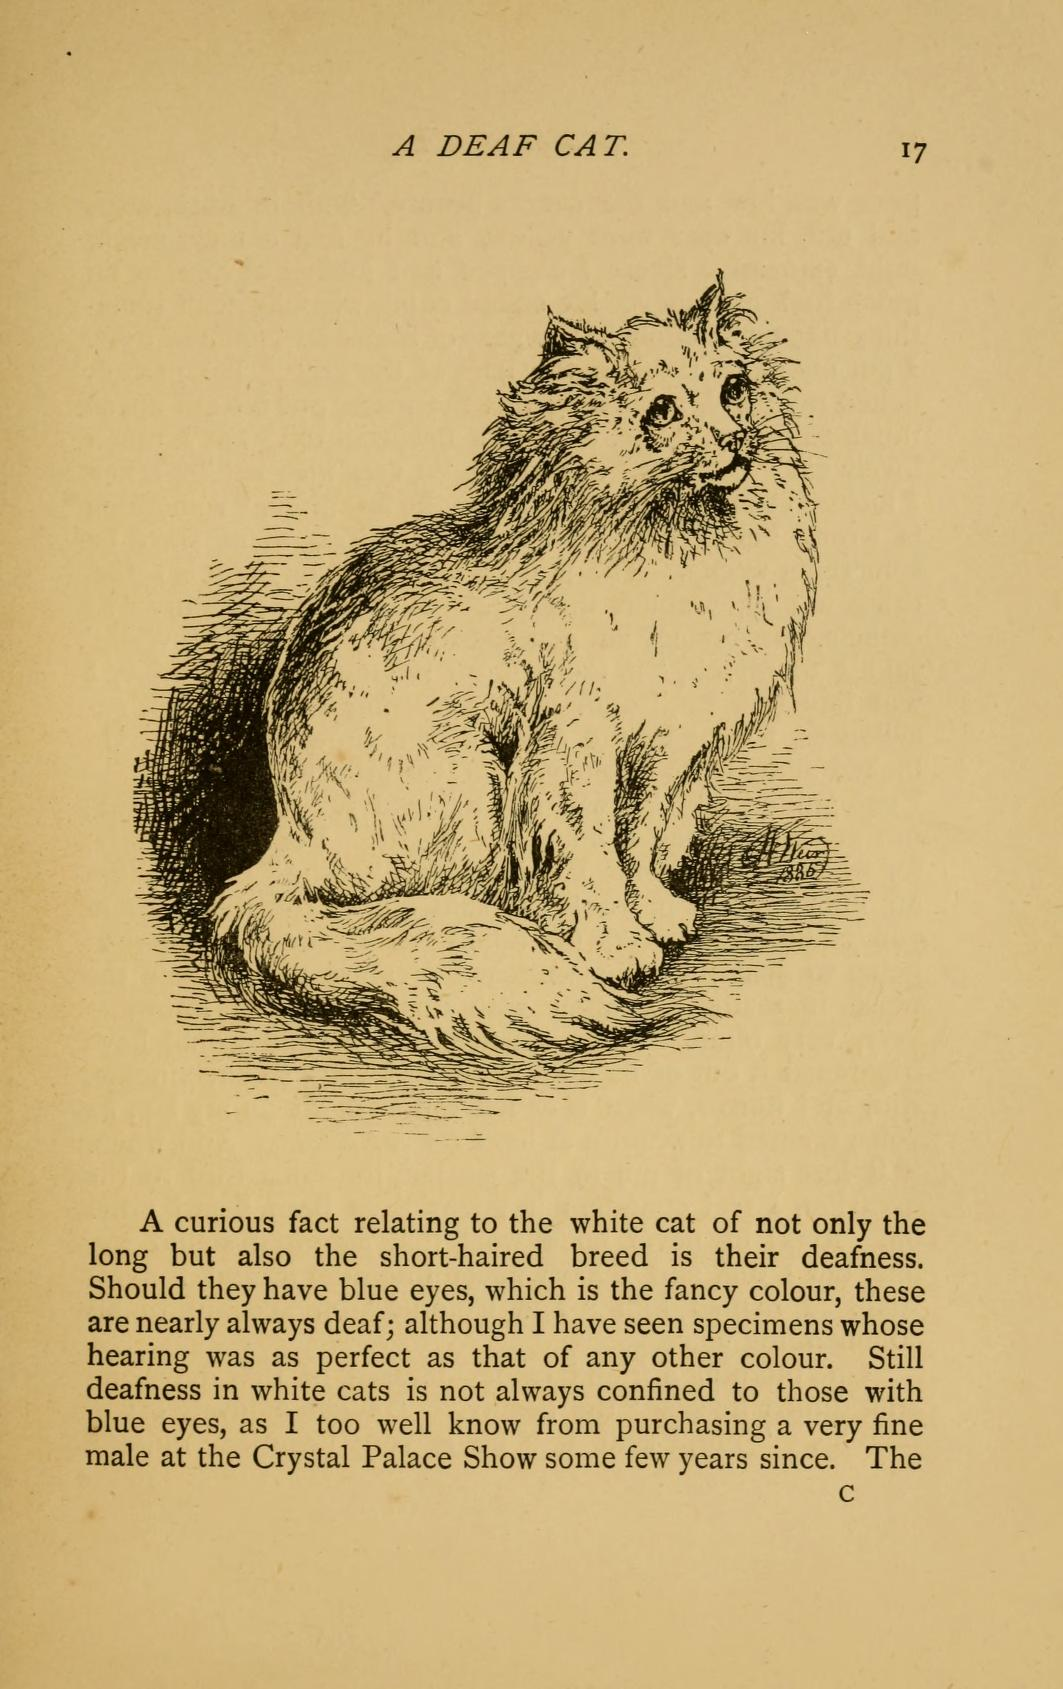 Our cats and all about them: their varieties, habits, and management, and for show, the standard of excellence and beauty by Harrison Weir, p. 17